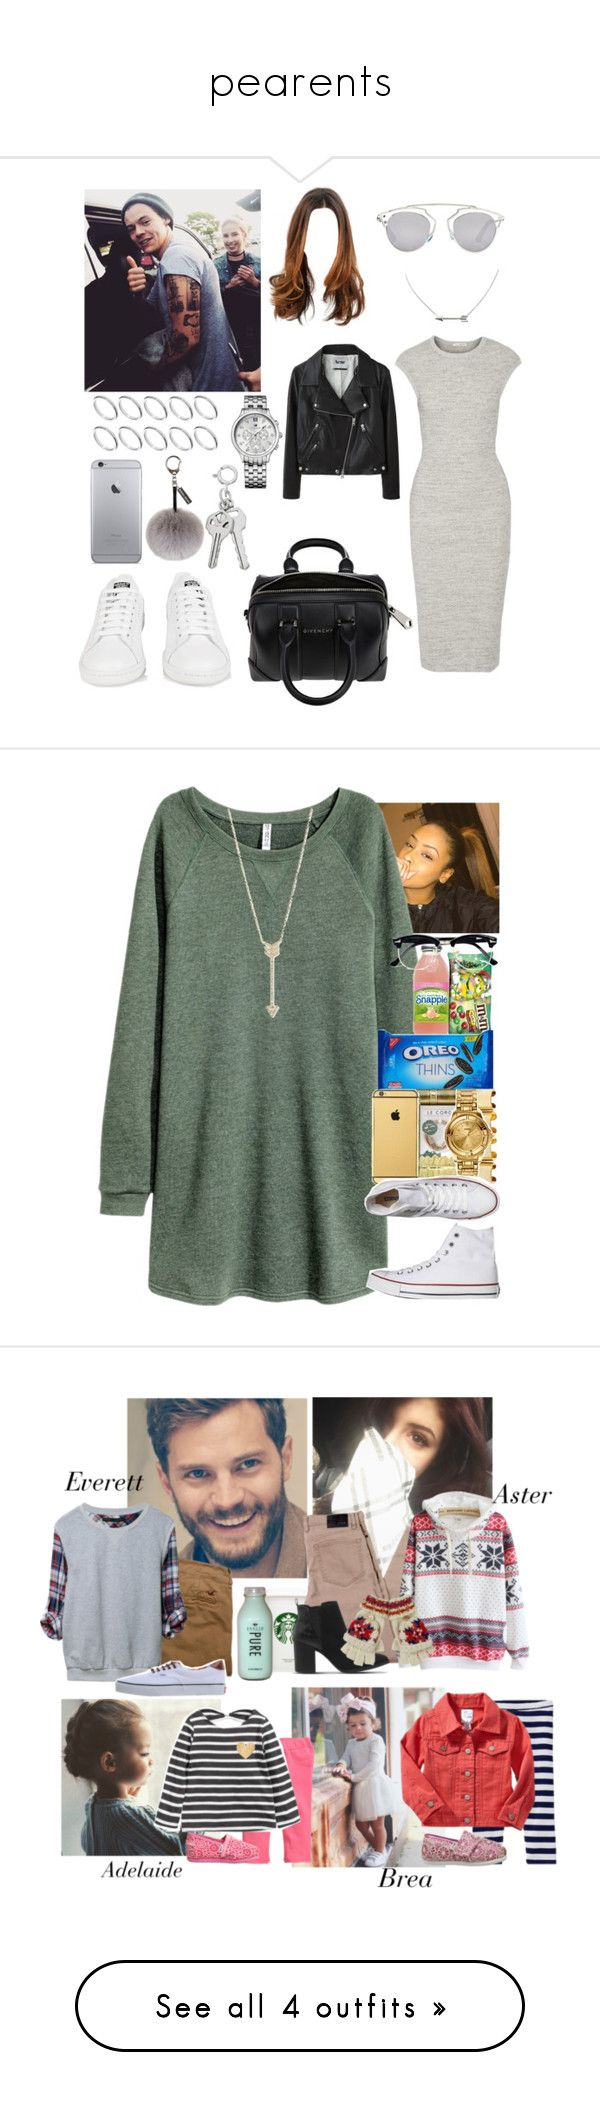 """""""pearents"""" by jade-durrant ❤ liked on Polyvore featuring James Perse, Acne Studios, adidas, Givenchy, Christian Dior, ASOS, Tommy Hilfiger, Helen Moore, H&M and Converse"""